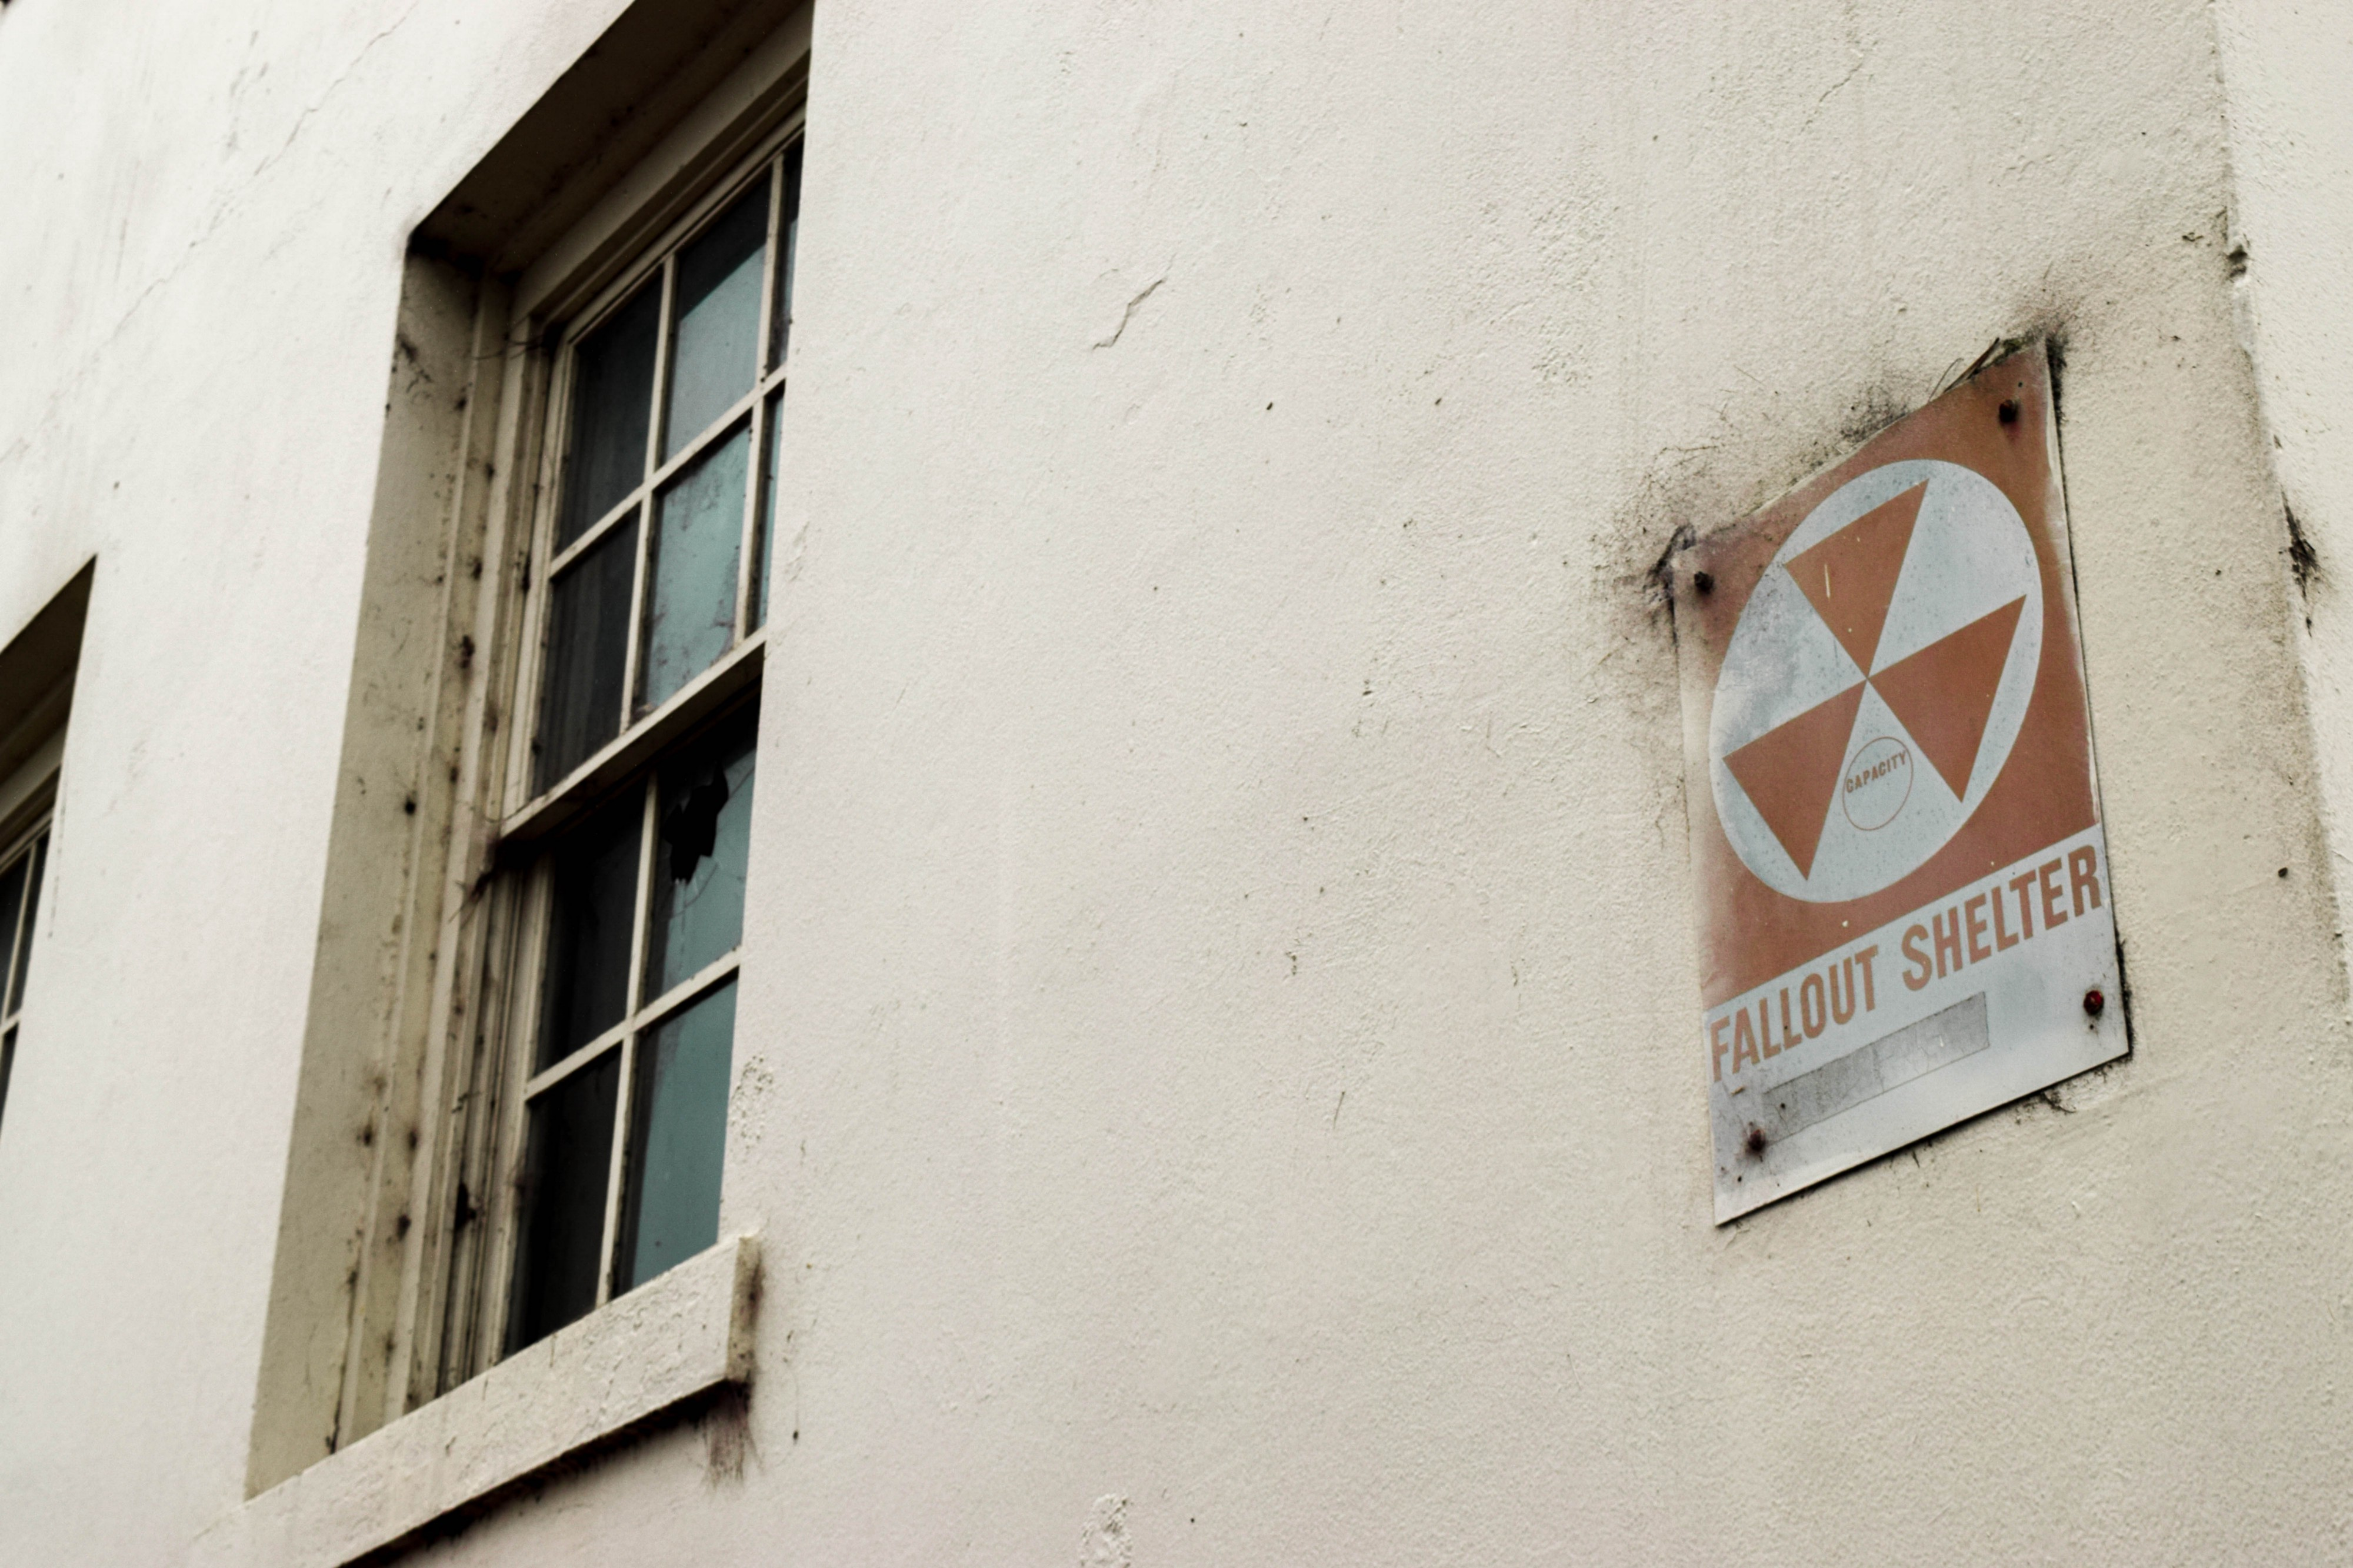 Sign marking the location of a nuclear fallout shelter